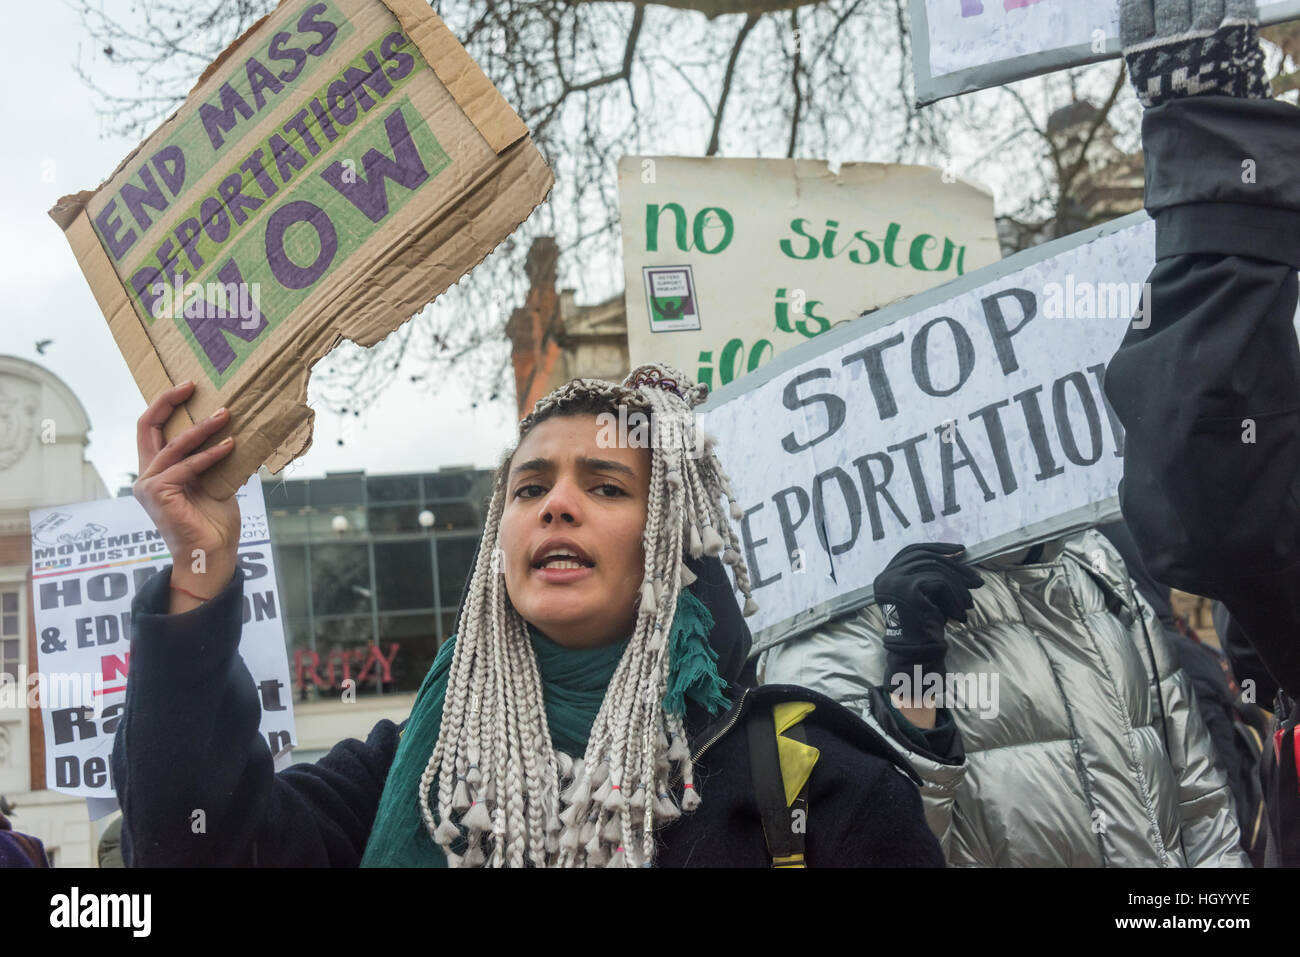 London, UK. 14th January 2017. Sisters Uncut at the rally at the end of the Movement for Justice march through Brixton - Stock Image